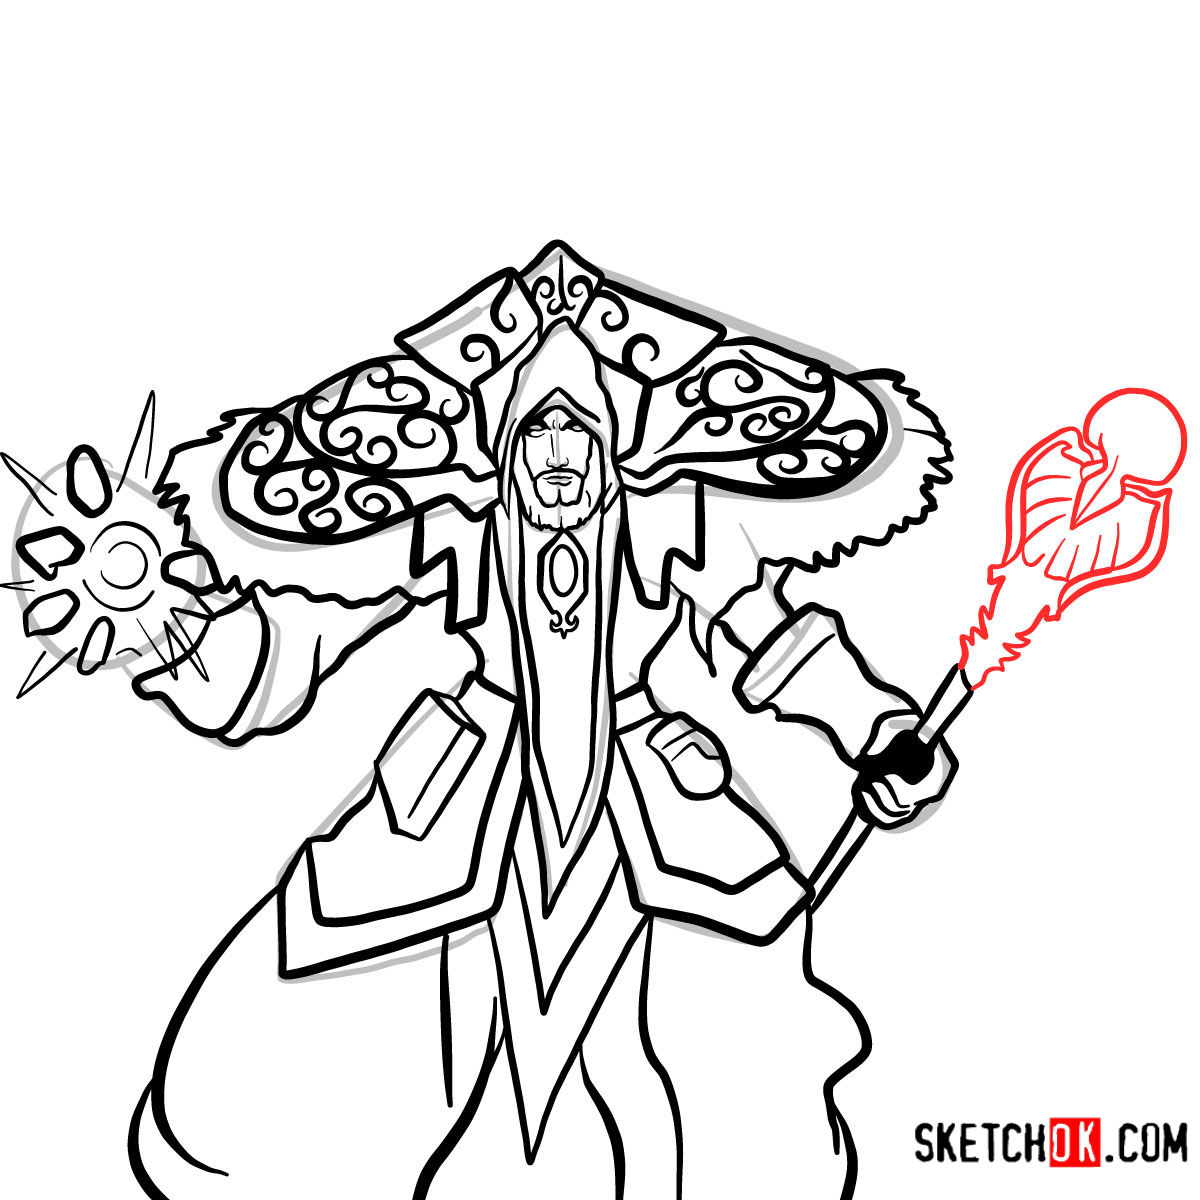 How to draw Magus Medivh | World of Warcraft - step 15